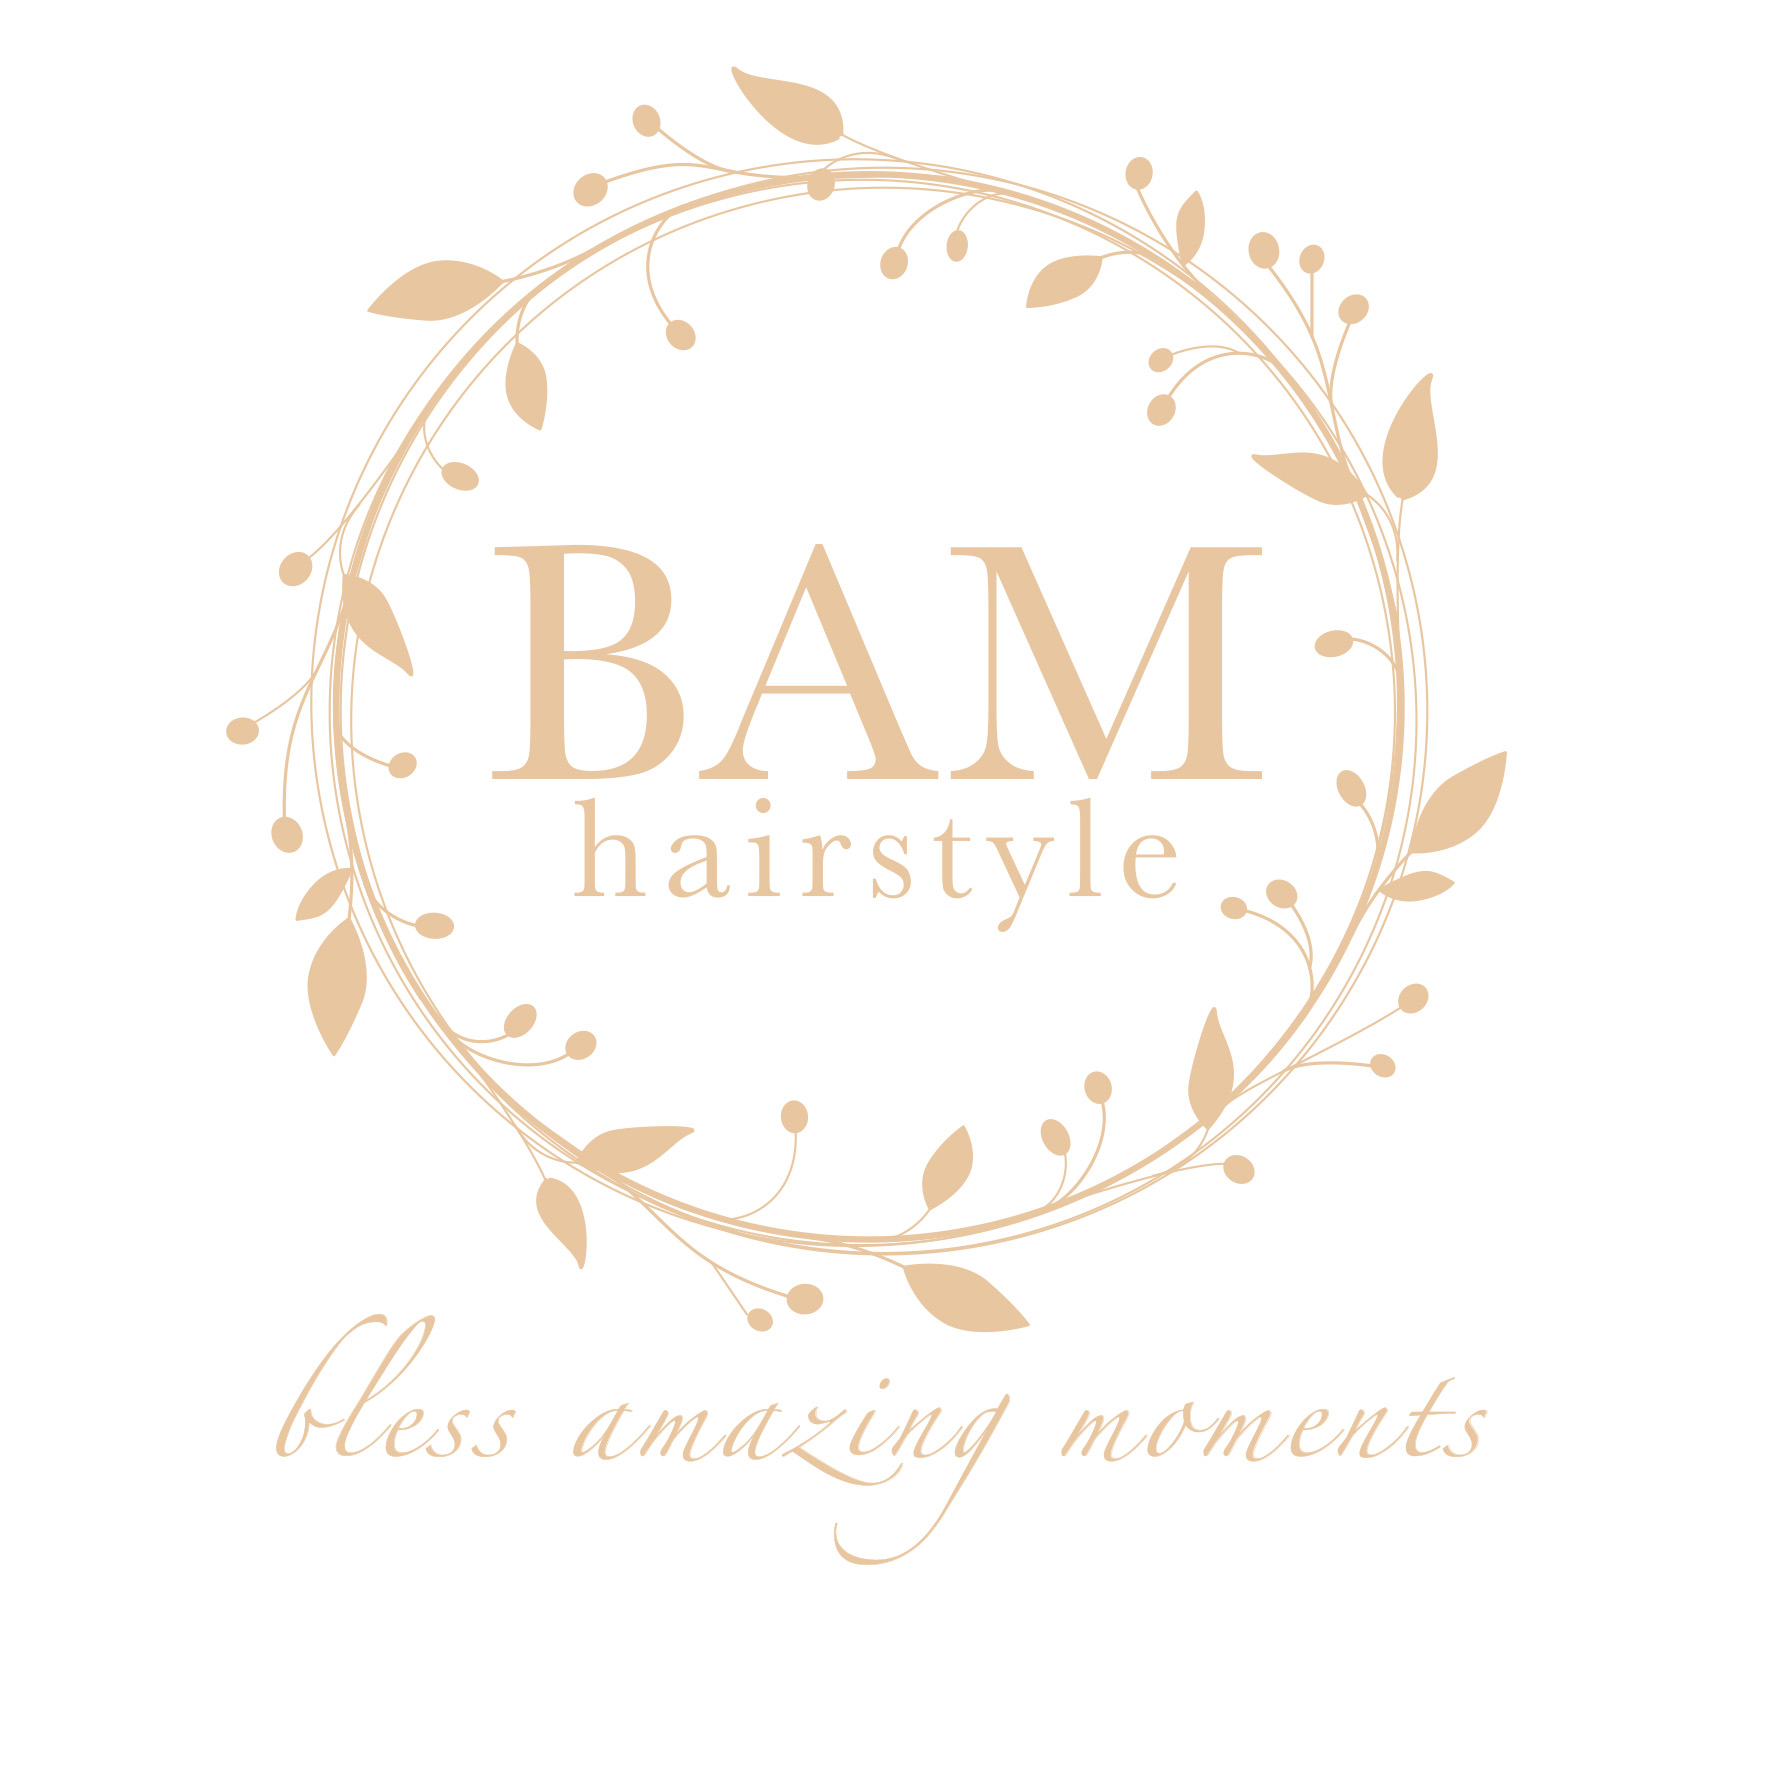 BAM hairstyle